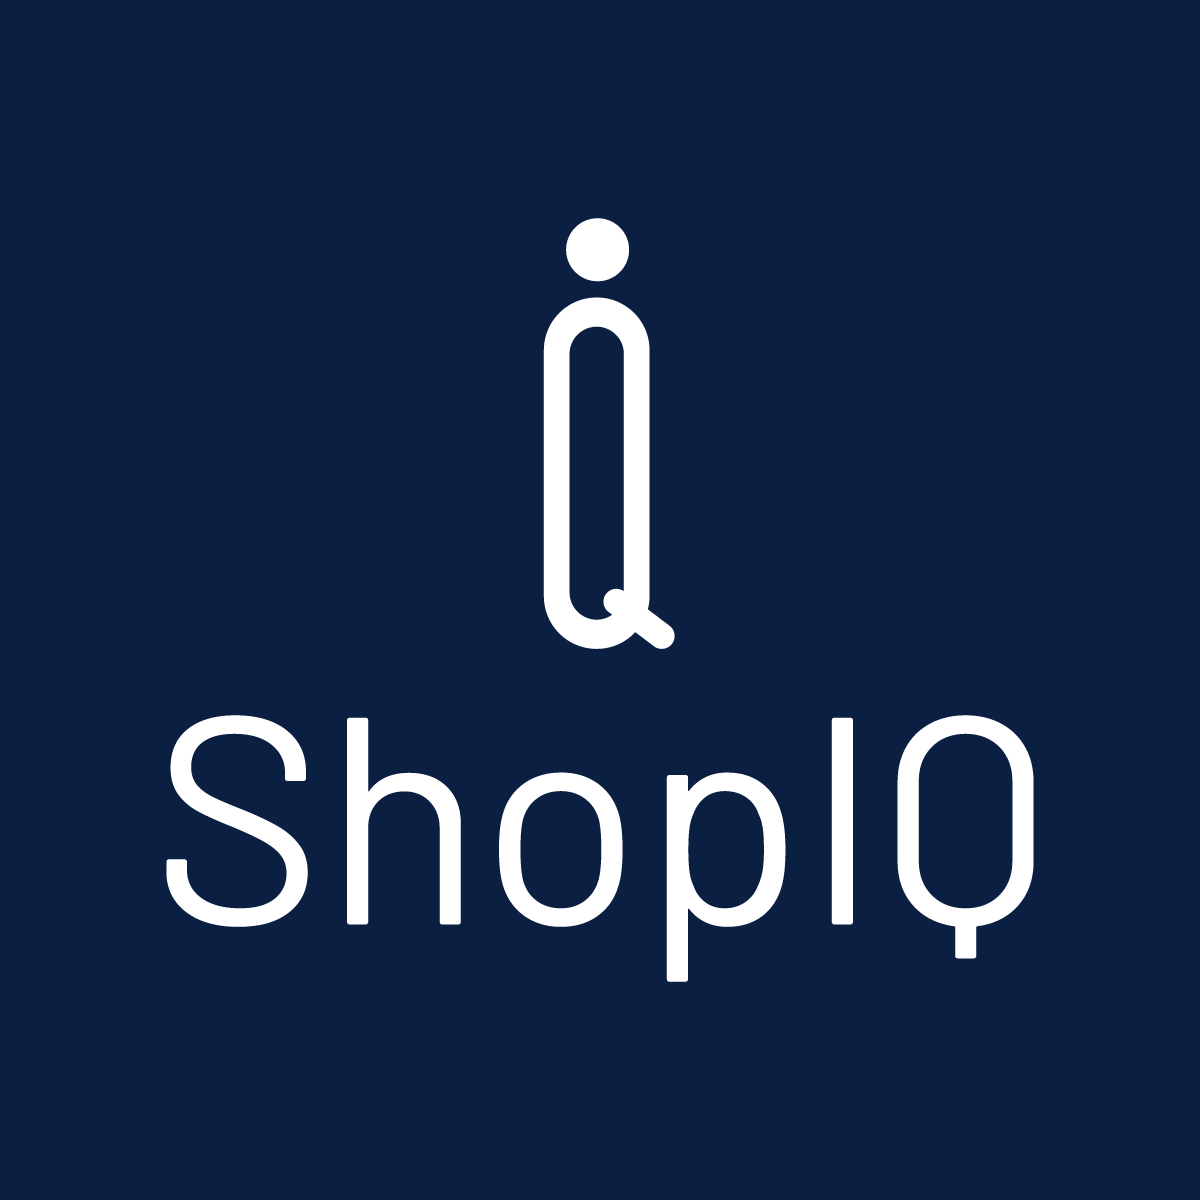 Hire Shopify Experts to integrate ShopIQ app into a Shopify store